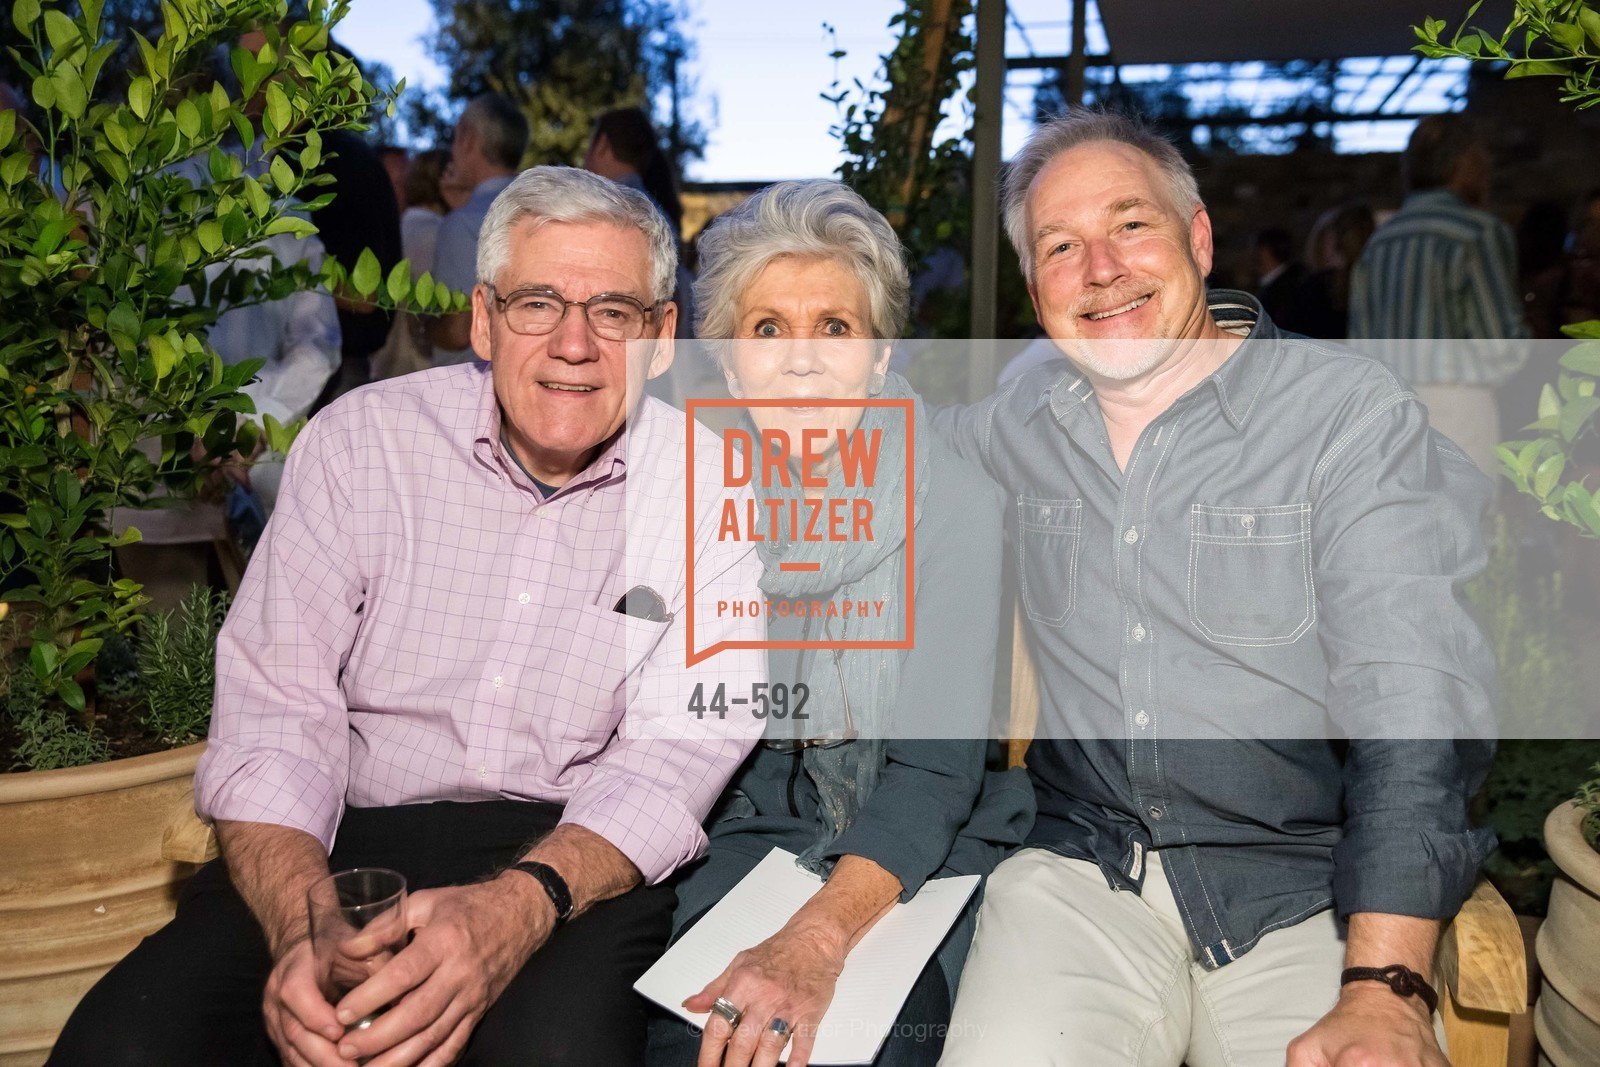 Jack Lungren, Suzanne Lungren, Ray Snyder, WILLIAMS-SONOMA Cochon BBQ Celebration, US, October 3rd, 2014,Drew Altizer, Drew Altizer Photography, full-service agency, private events, San Francisco photographer, photographer california